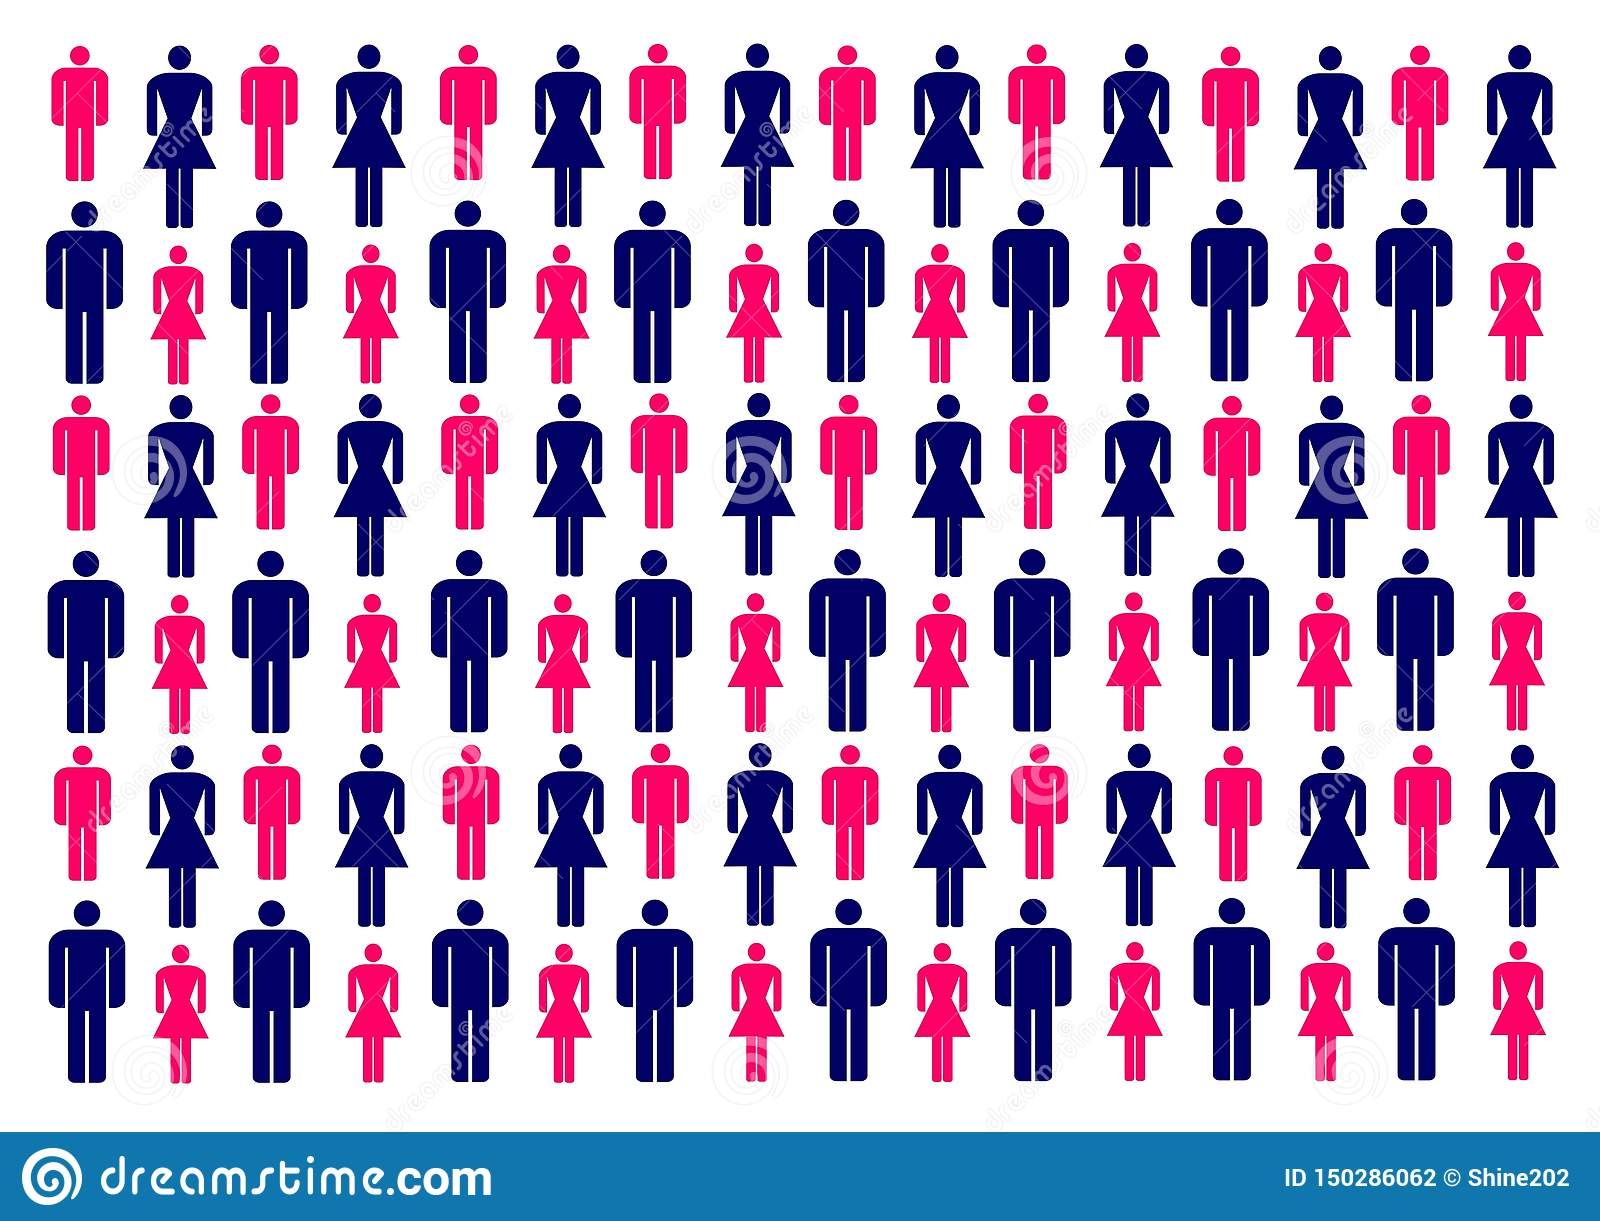 Vector illustration with colorful silhouettes of men and women